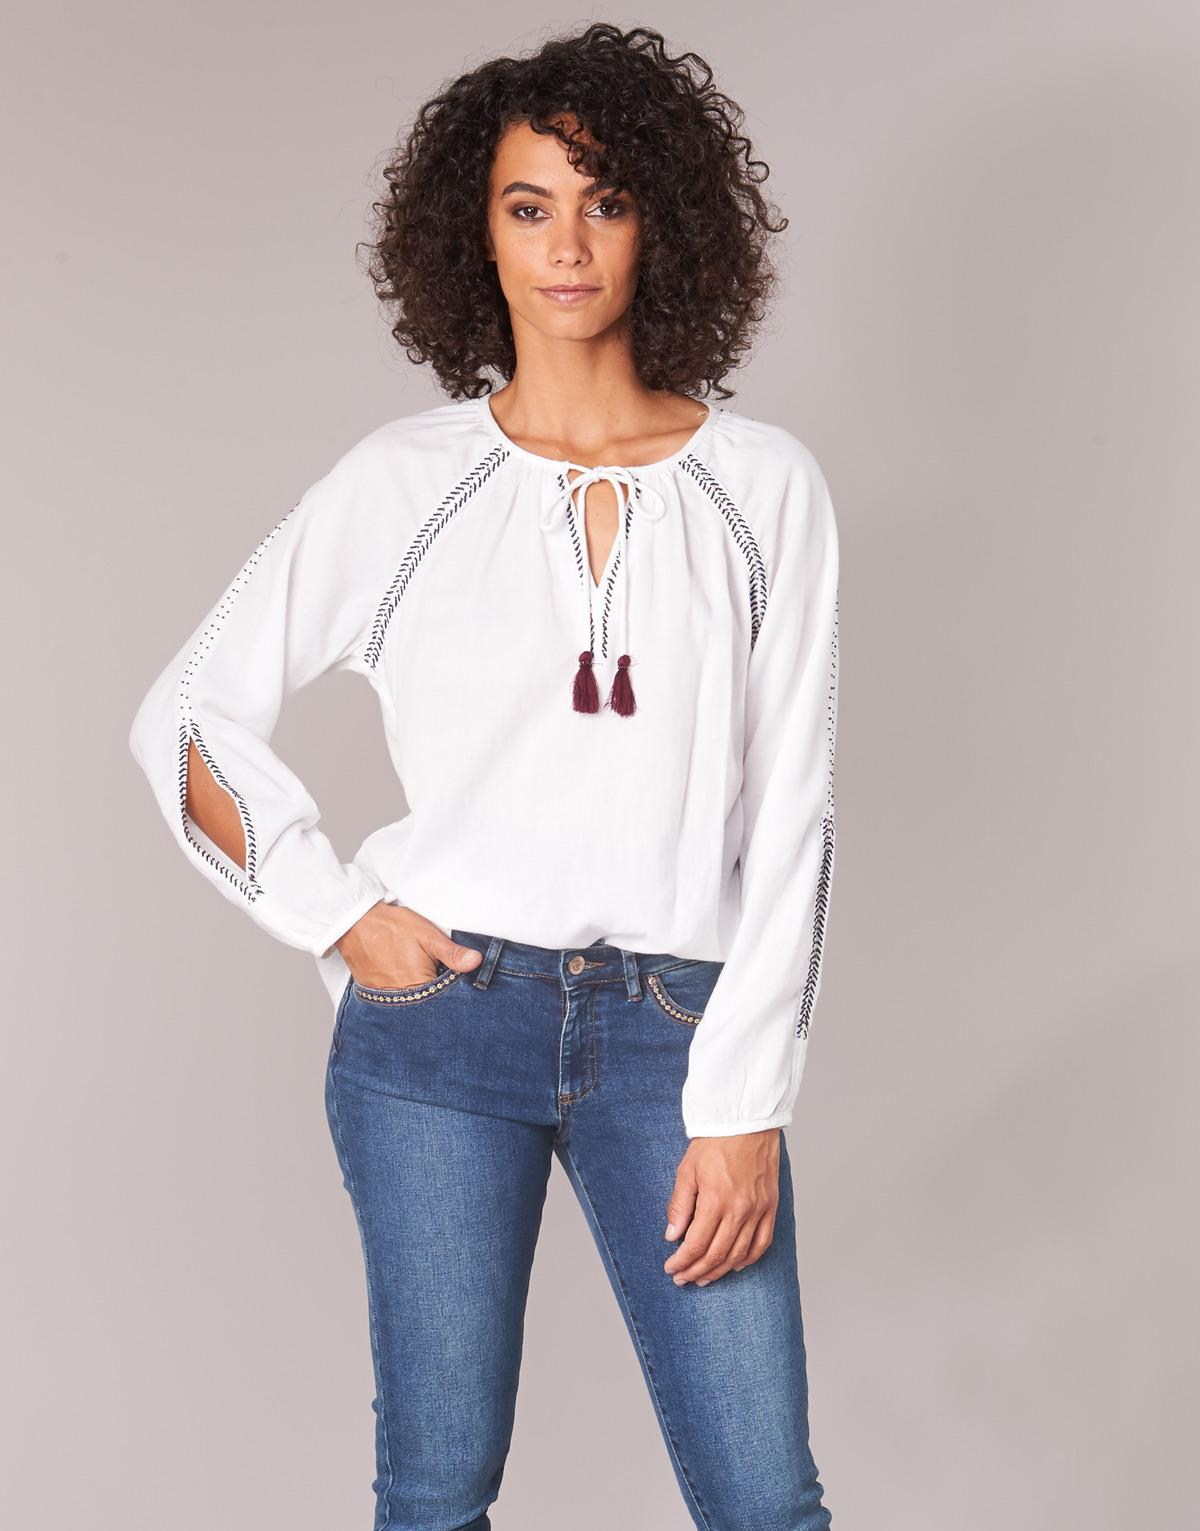 IKKS Cranbery Women's Blouse In White